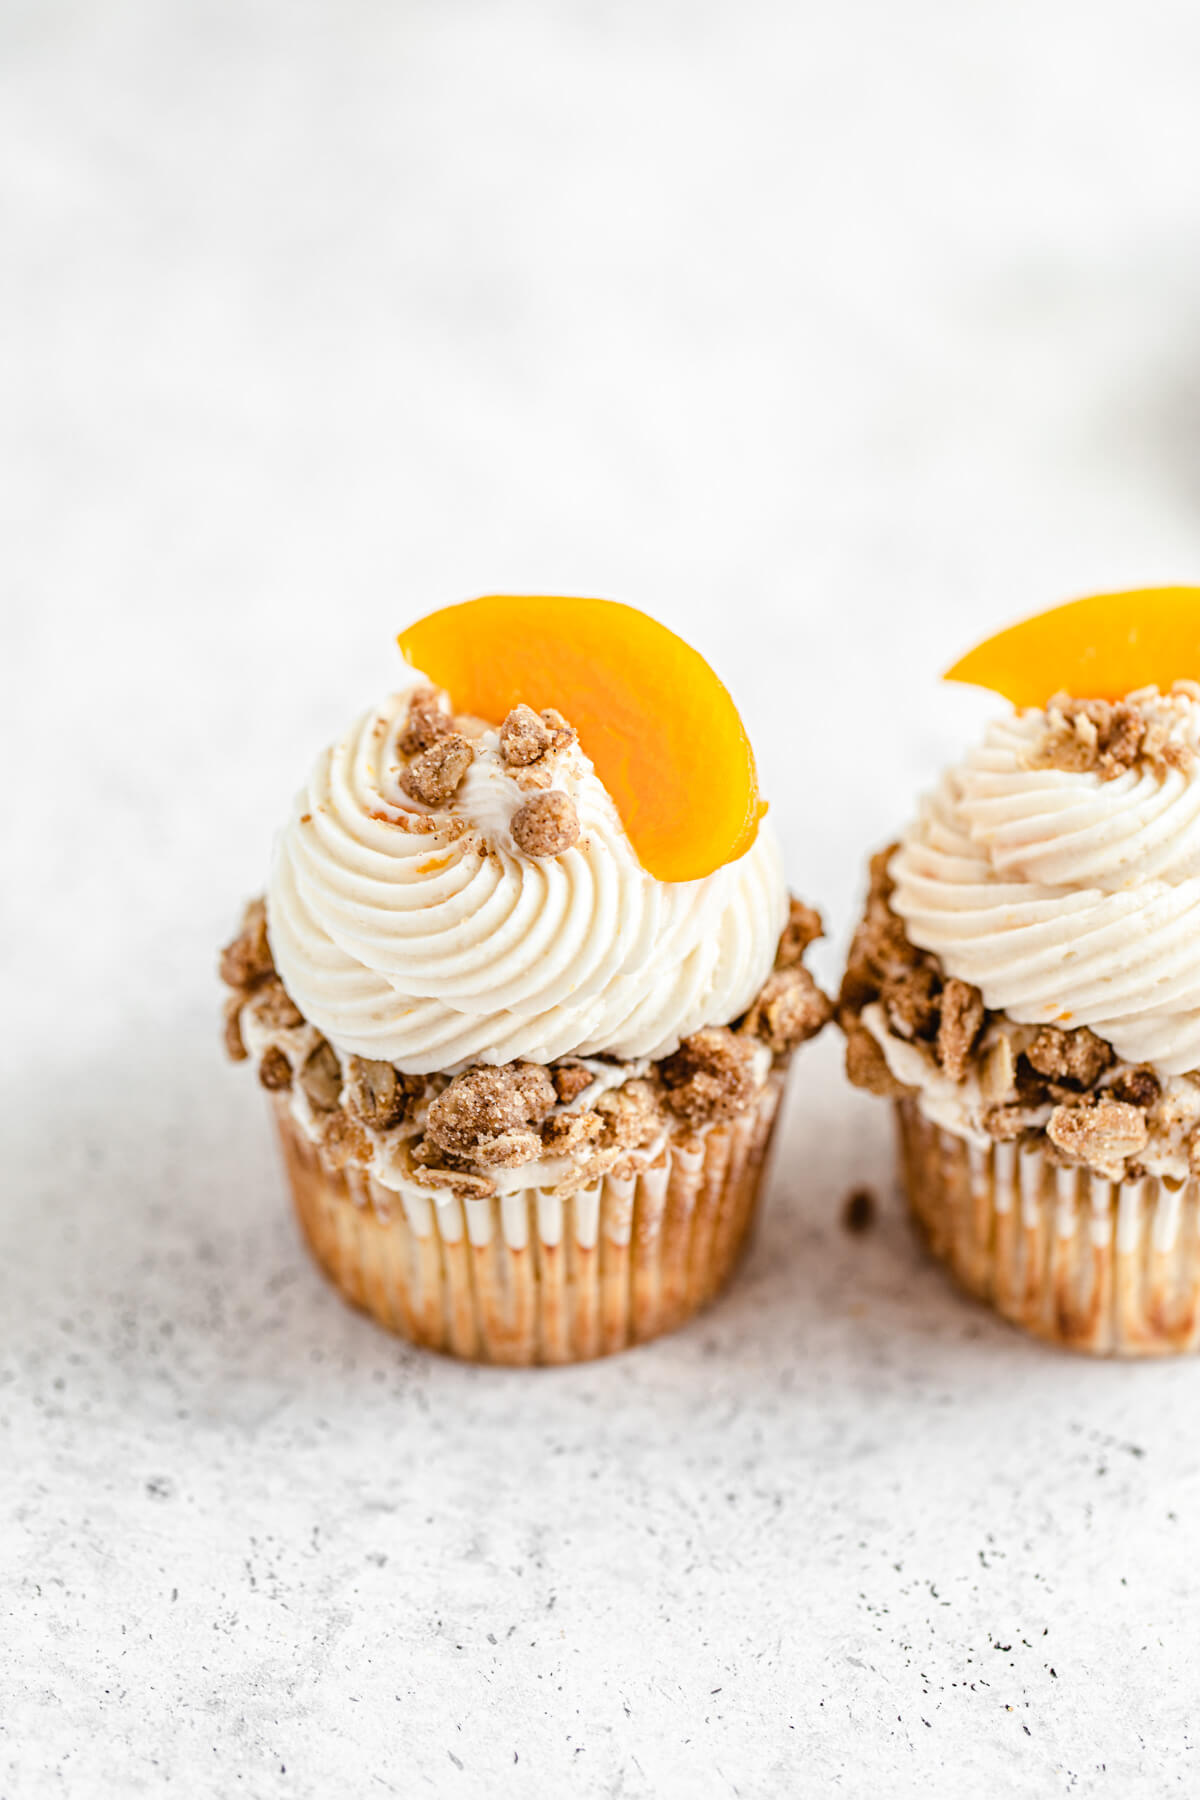 close up angled view of two cupcakes